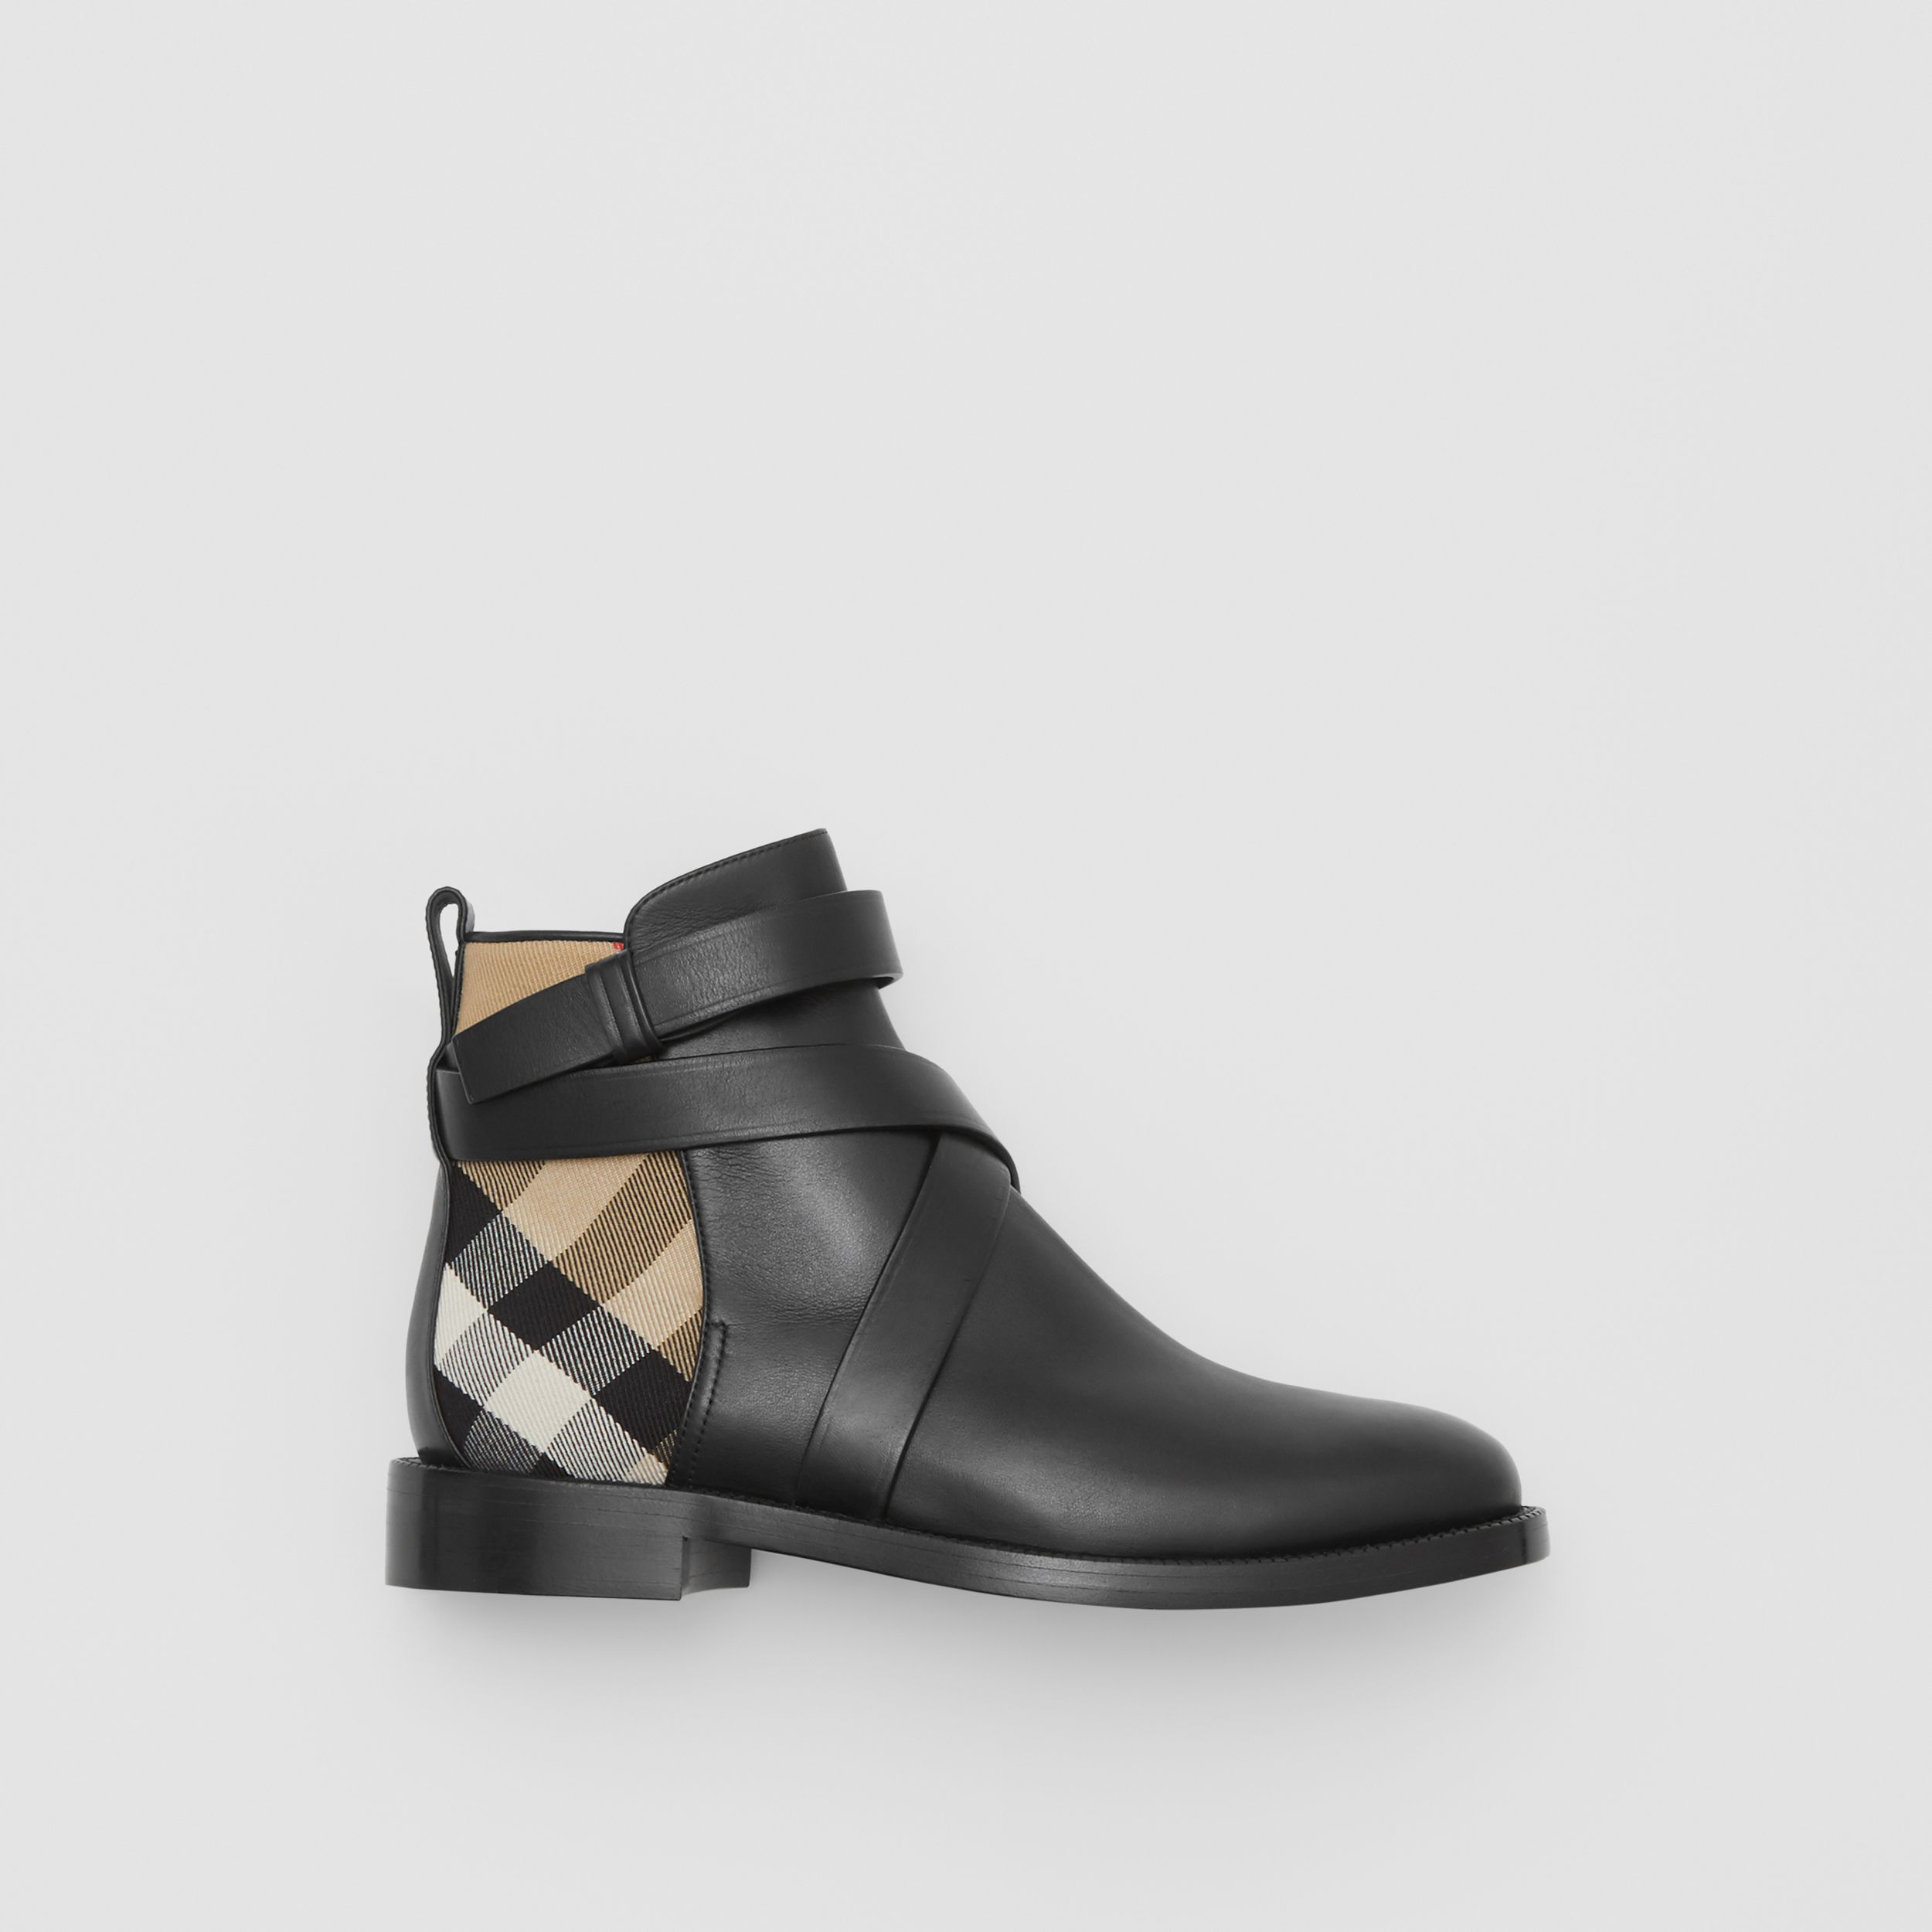 House Check and Leather Ankle Boots in Black/archive Beige - Women | Burberry Canada - 1